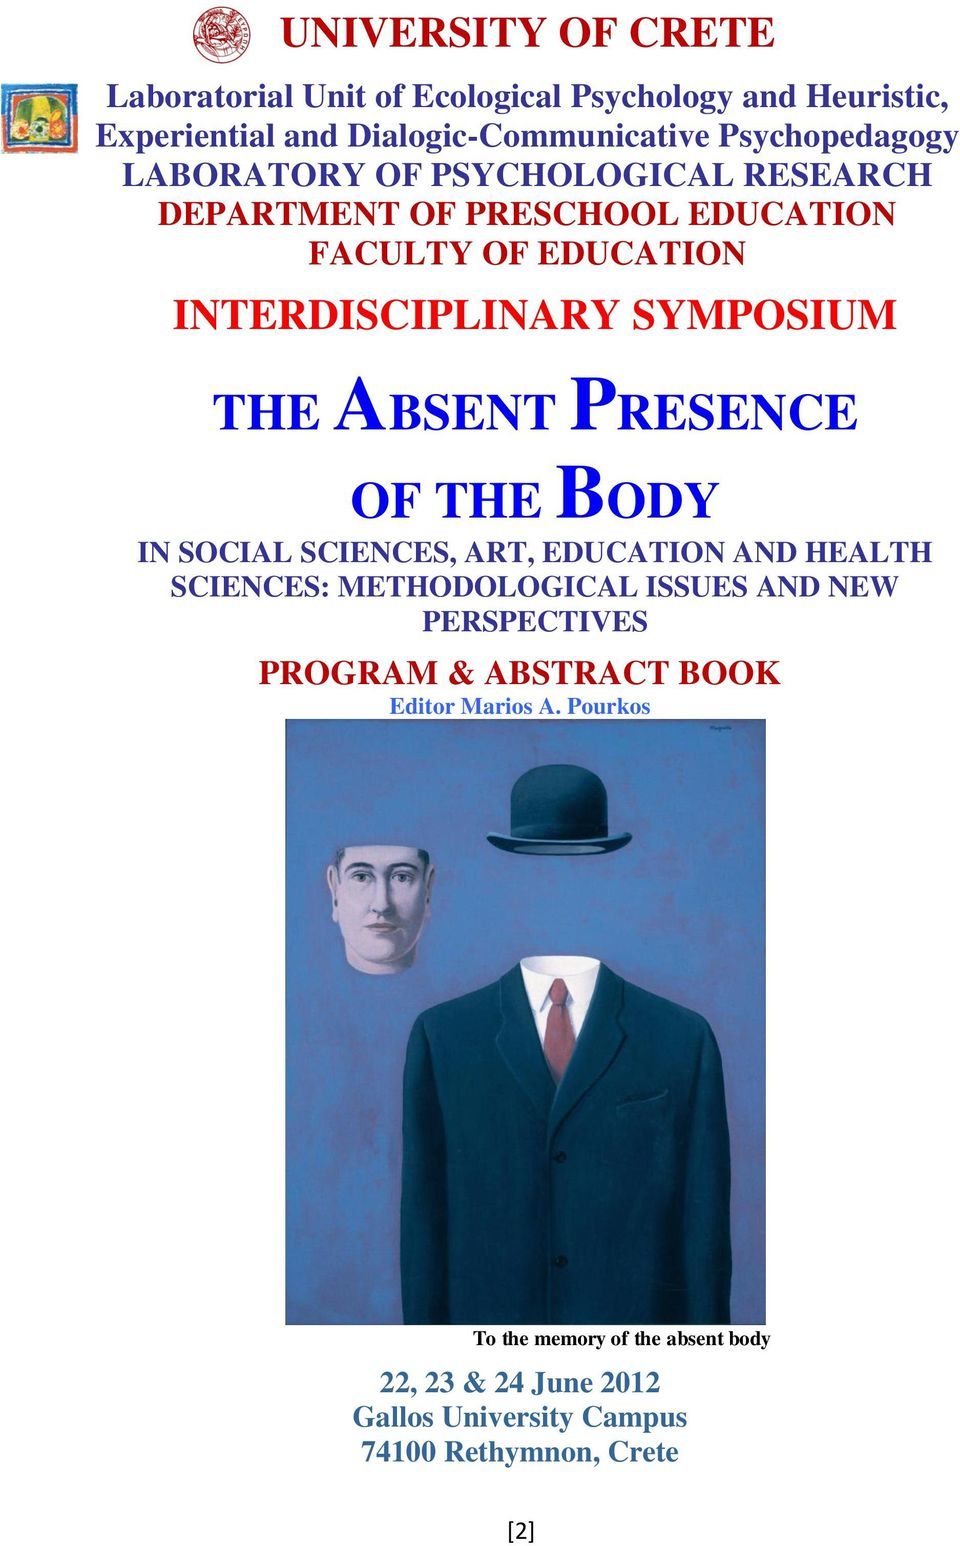 PRESENCE OF THE BODY IN SOCIAL SCIENCES, ART, EDUCATION AND HEALTH SCIENCES: METHODOLOGICAL ISSUES AND NEW PERSPECTIVES PROGRAM &